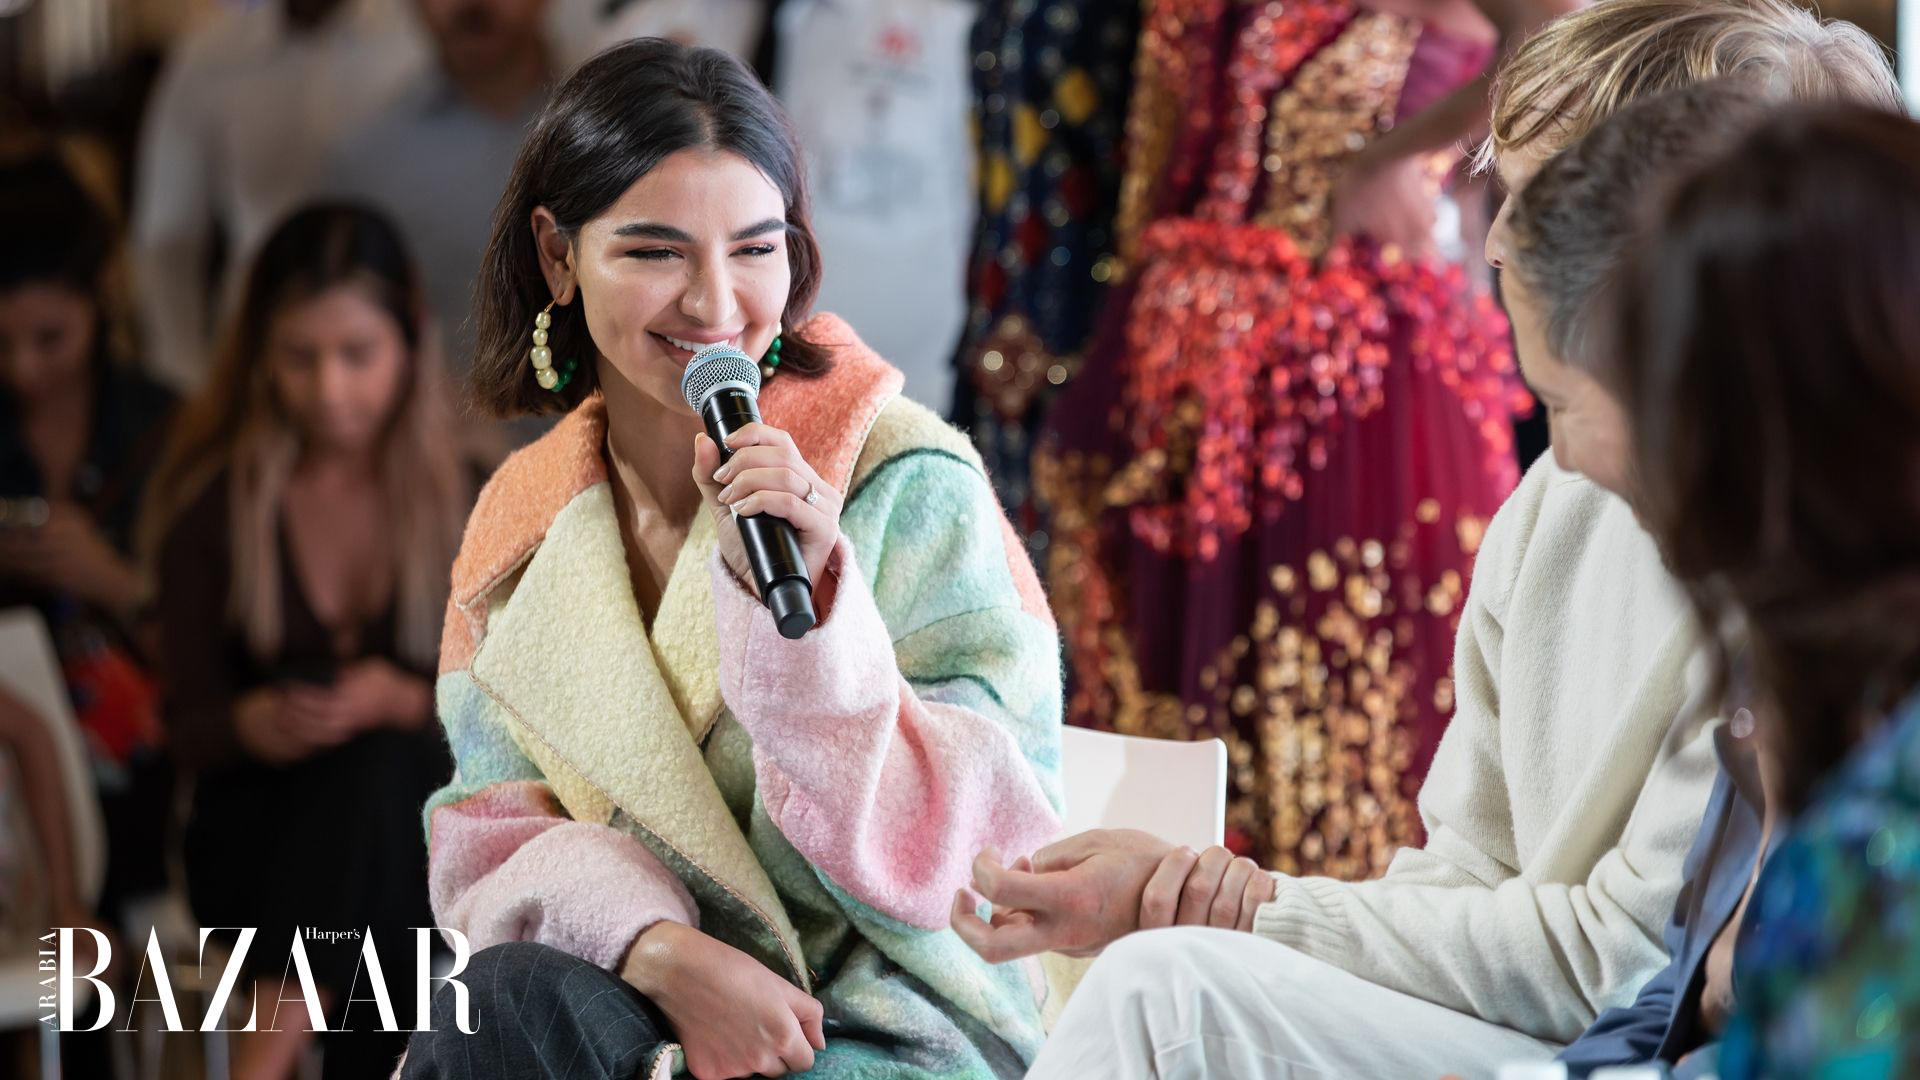 Rania Fawaz Wore This Stunning Coat By Peter Pilotto At The Bazaar Capsule